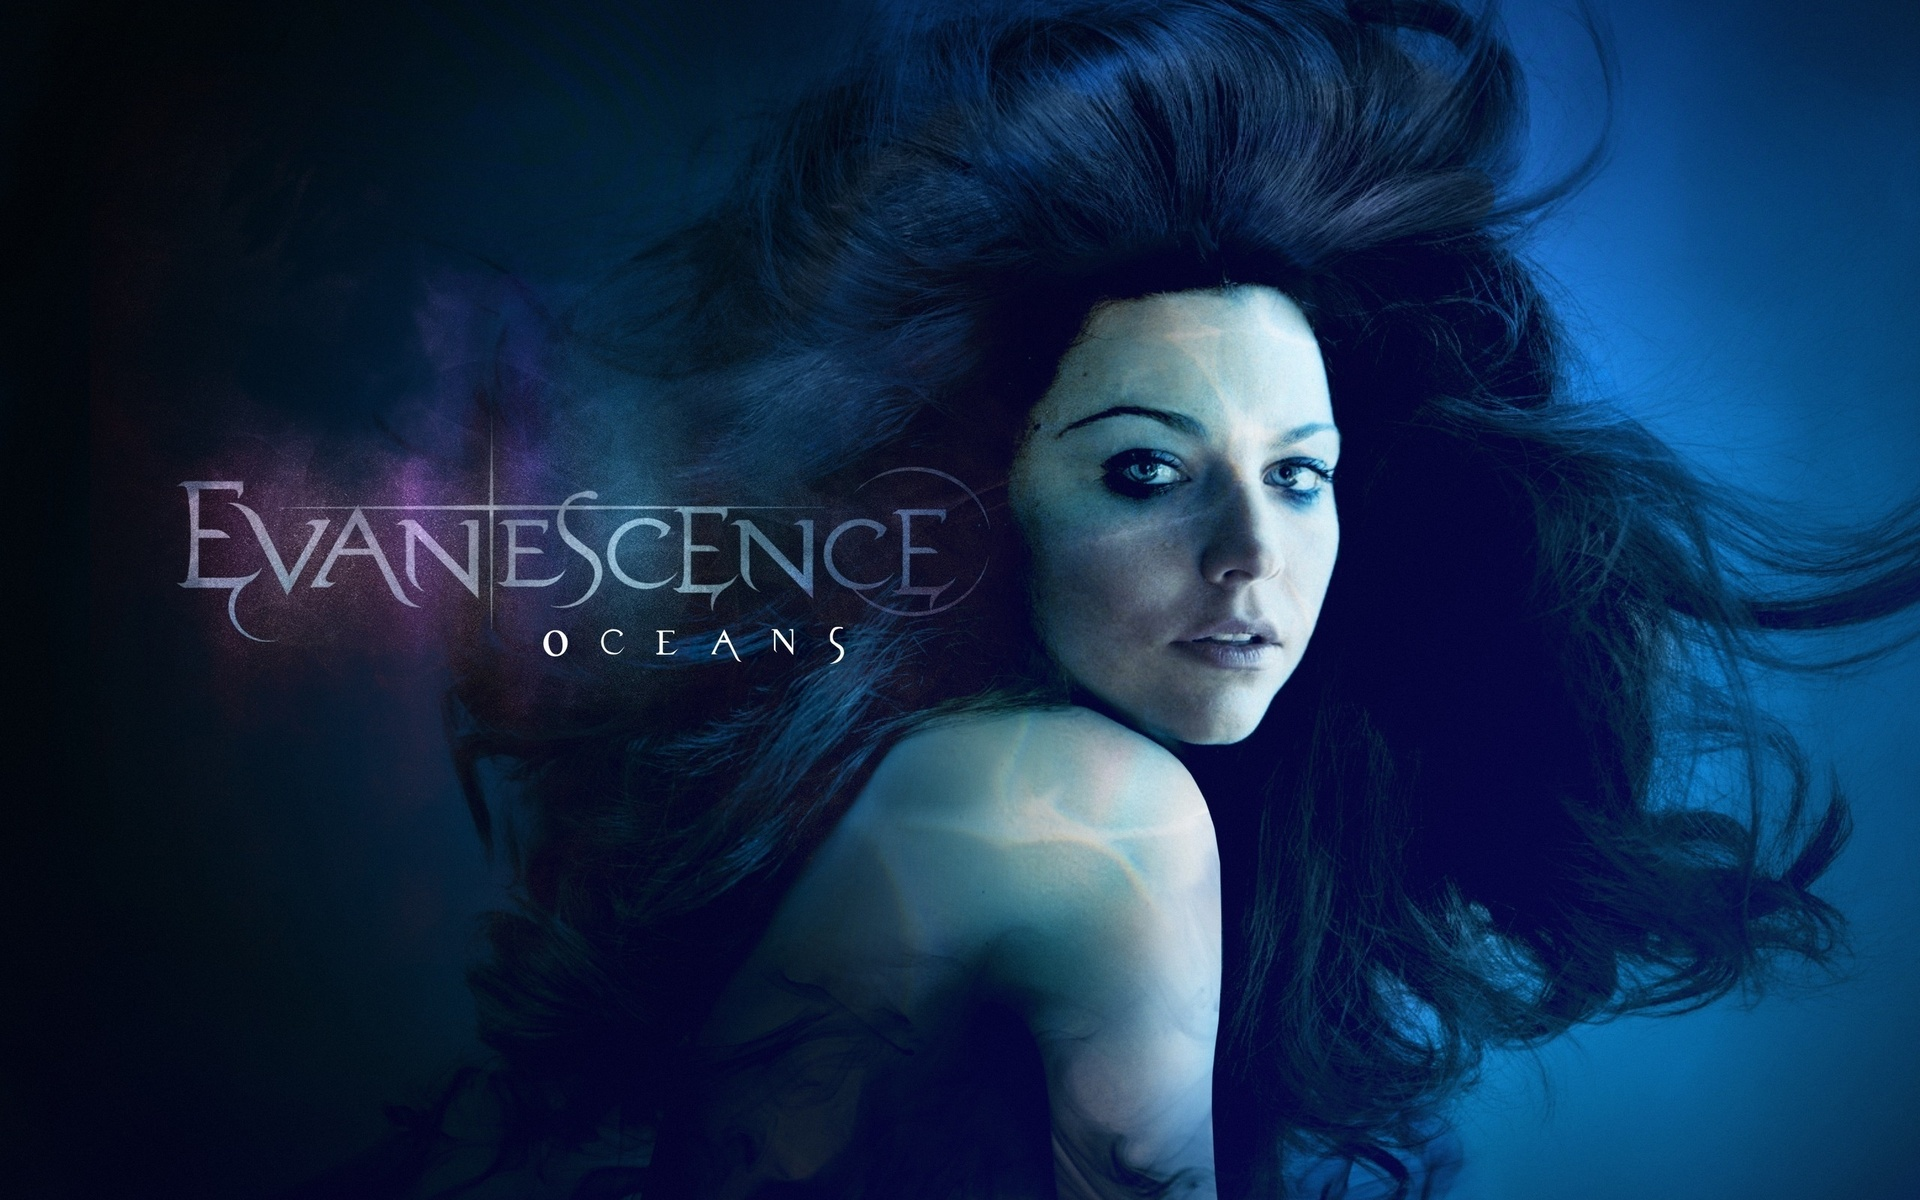 Wallpaper Amy Lee evanescence Meinungen Musik widescreen 1920x1200 1920x1200